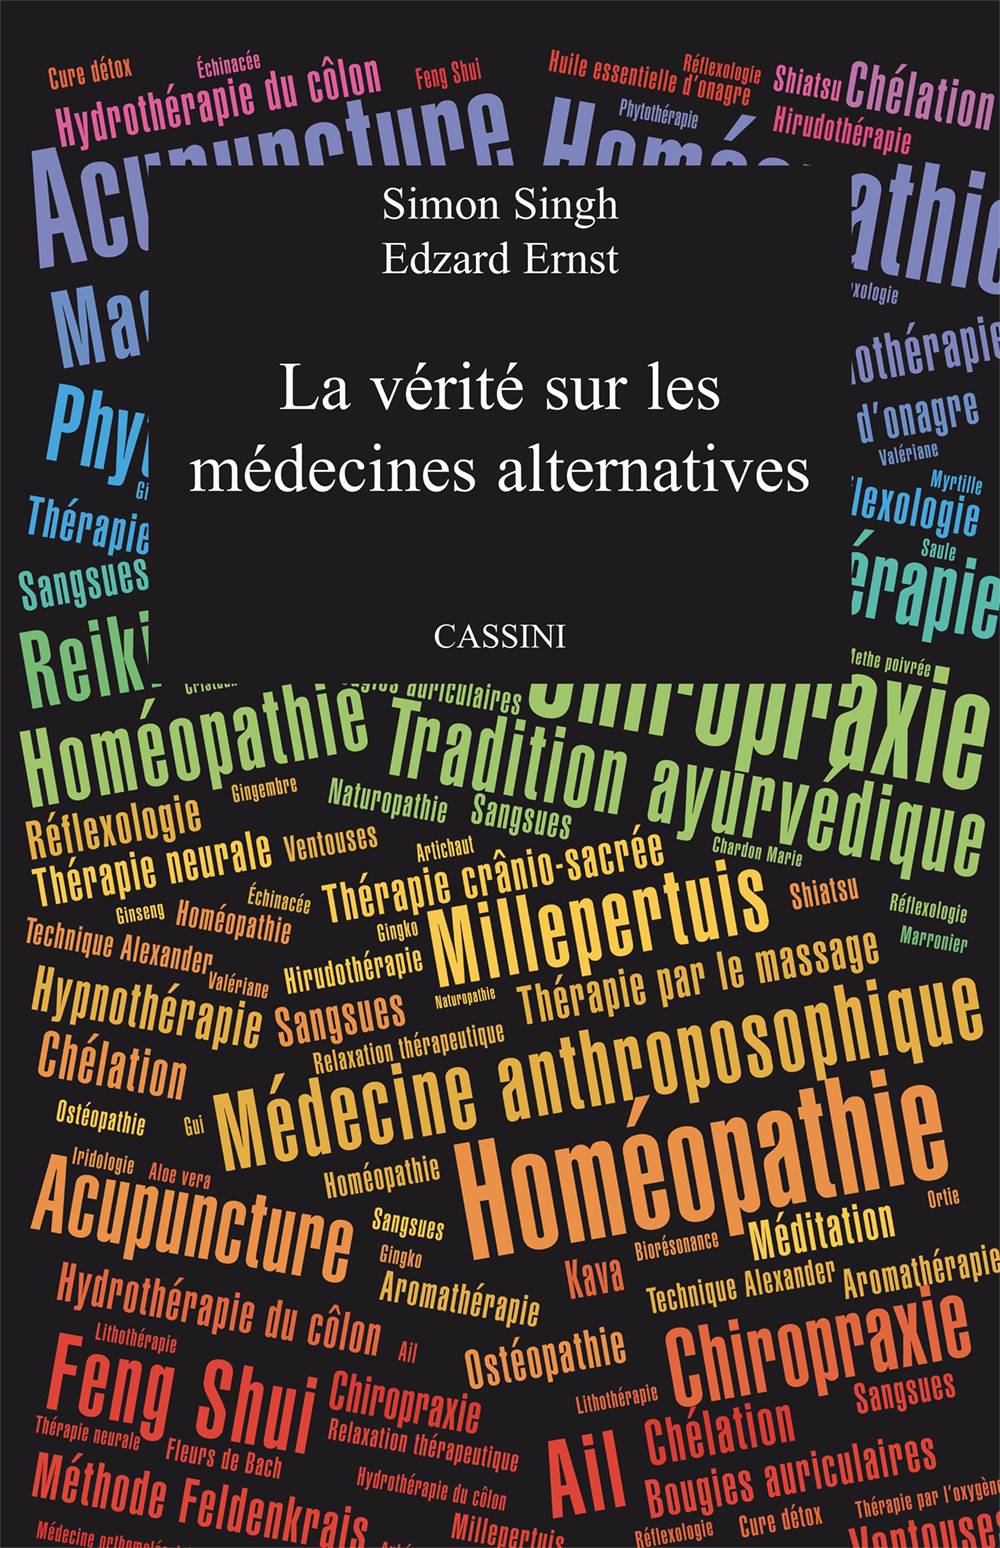 LA VERITE SUR LES MEDECINES ALTERNATIVES